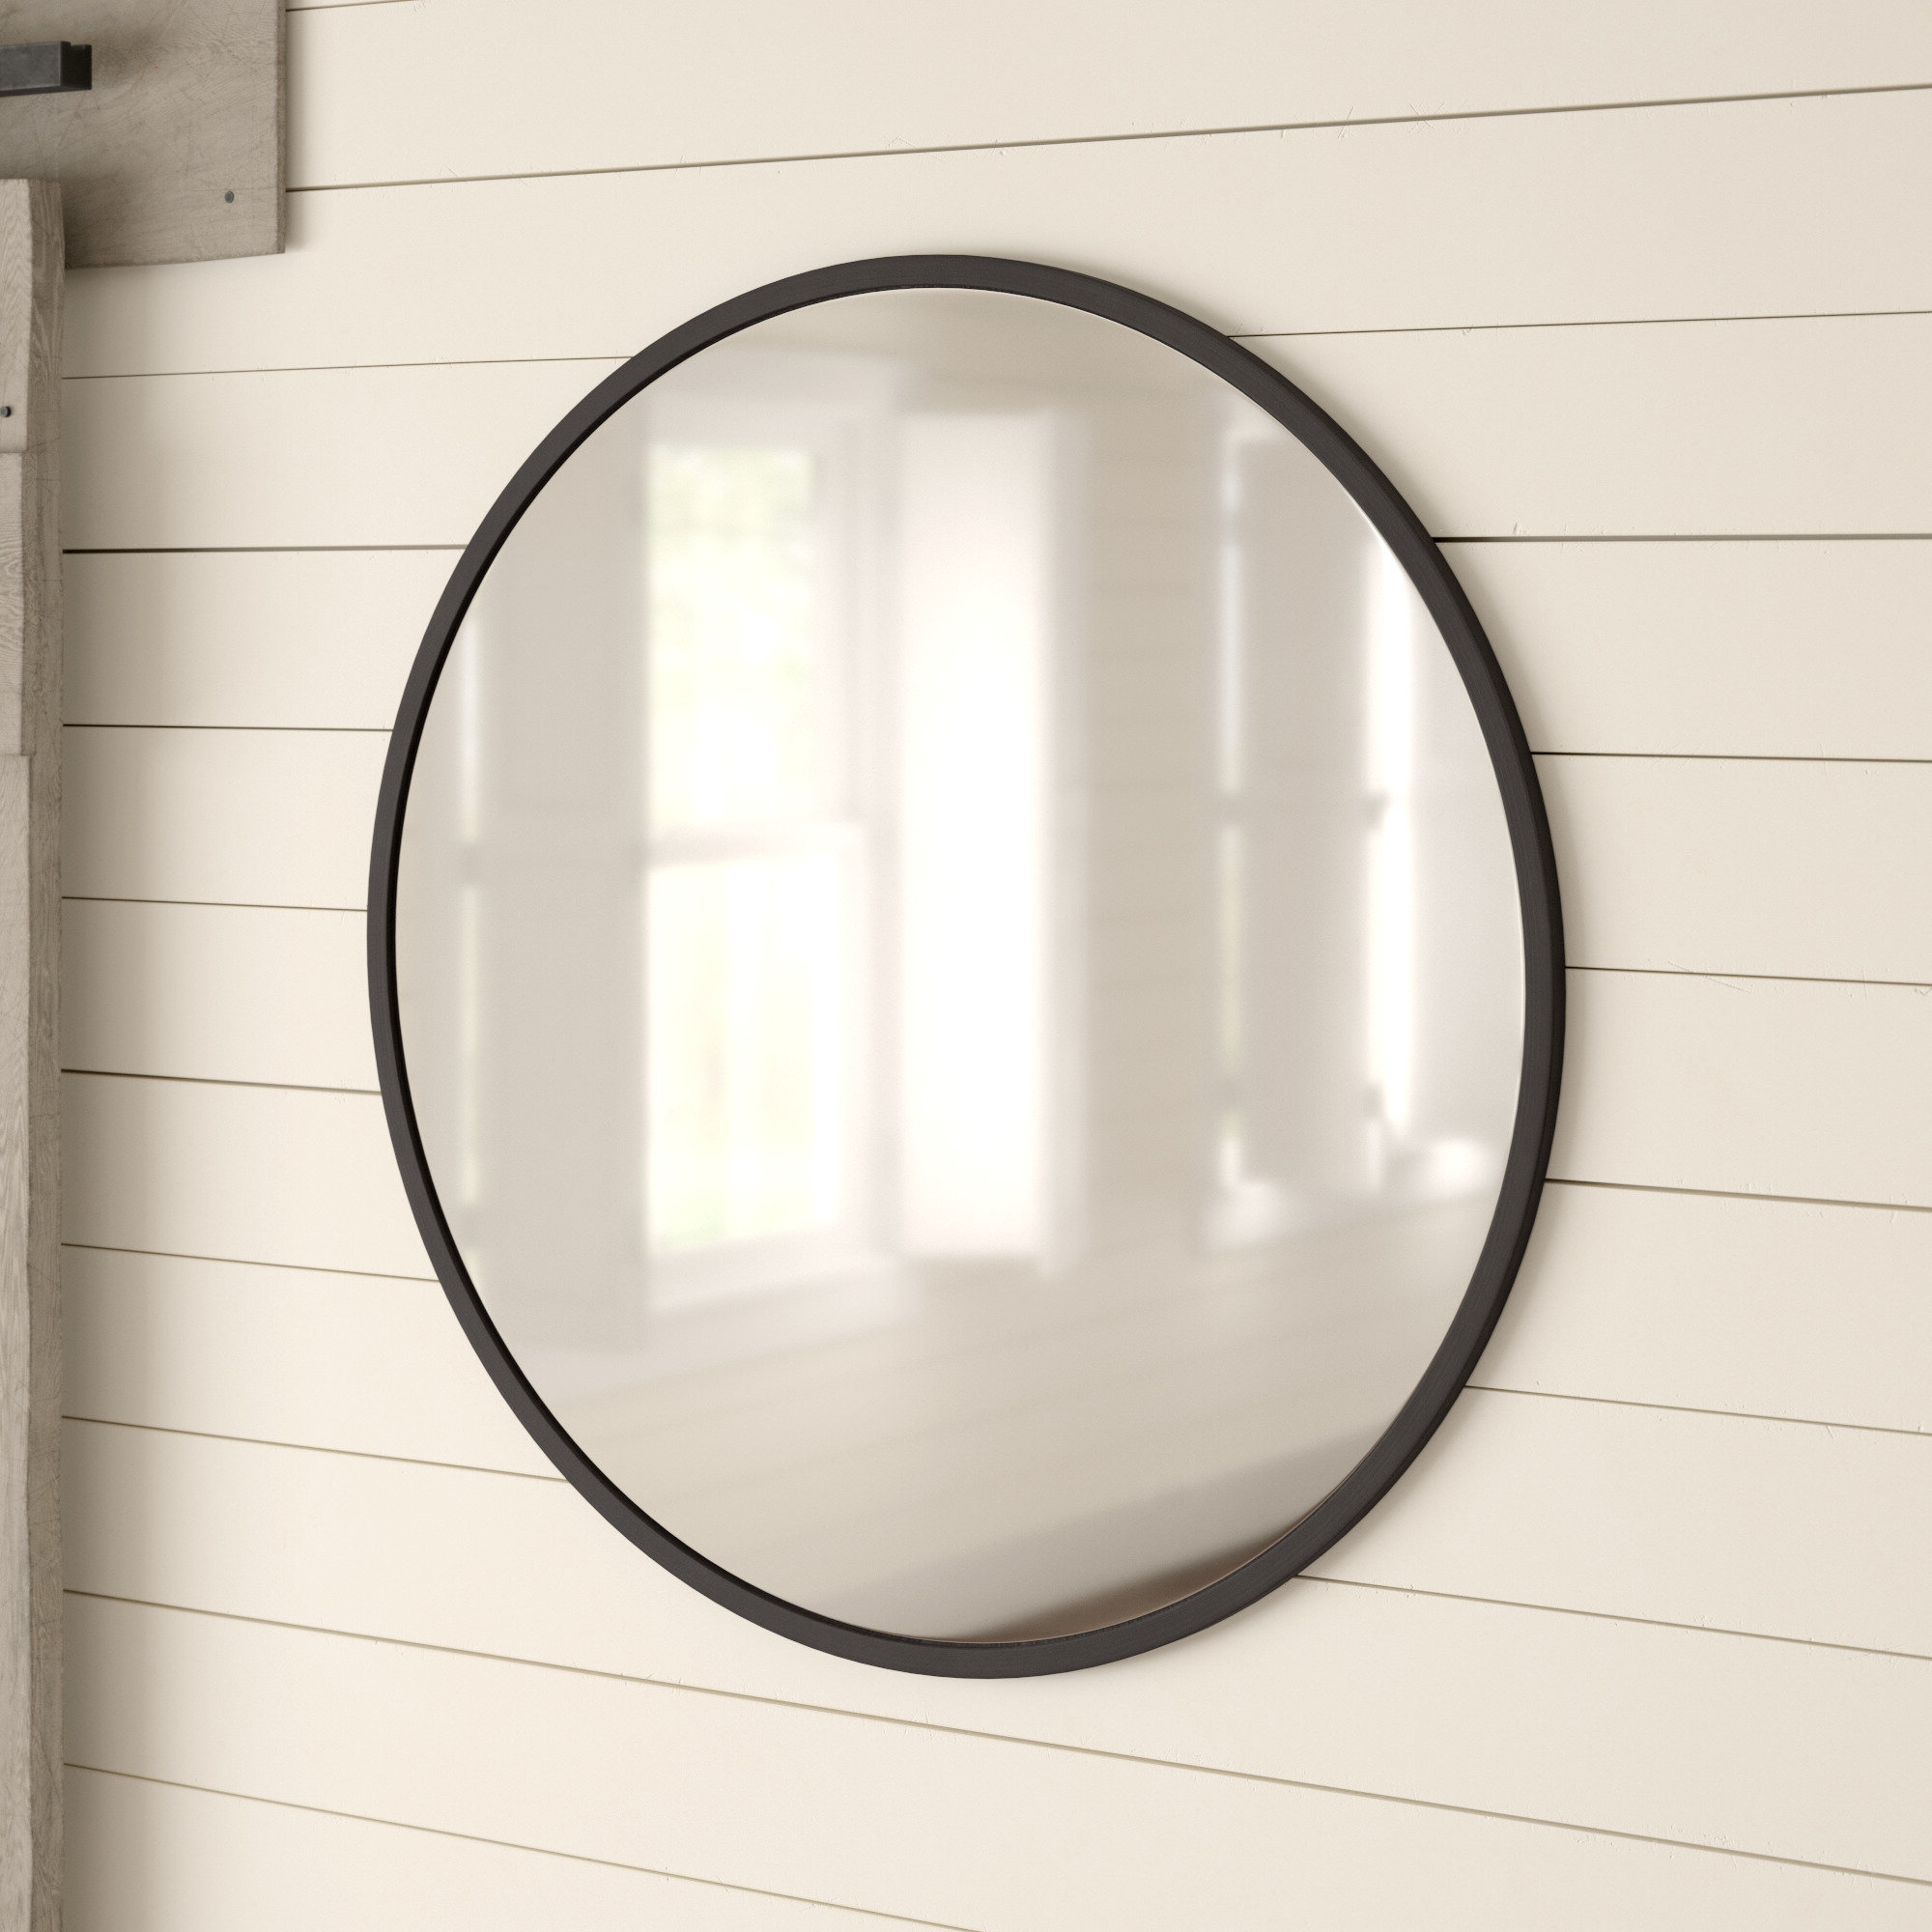 Hub Modern And Contemporary Accent Mirror Regarding Favorite Colton Modern & Contemporary Wall Mirrors (View 15 of 20)